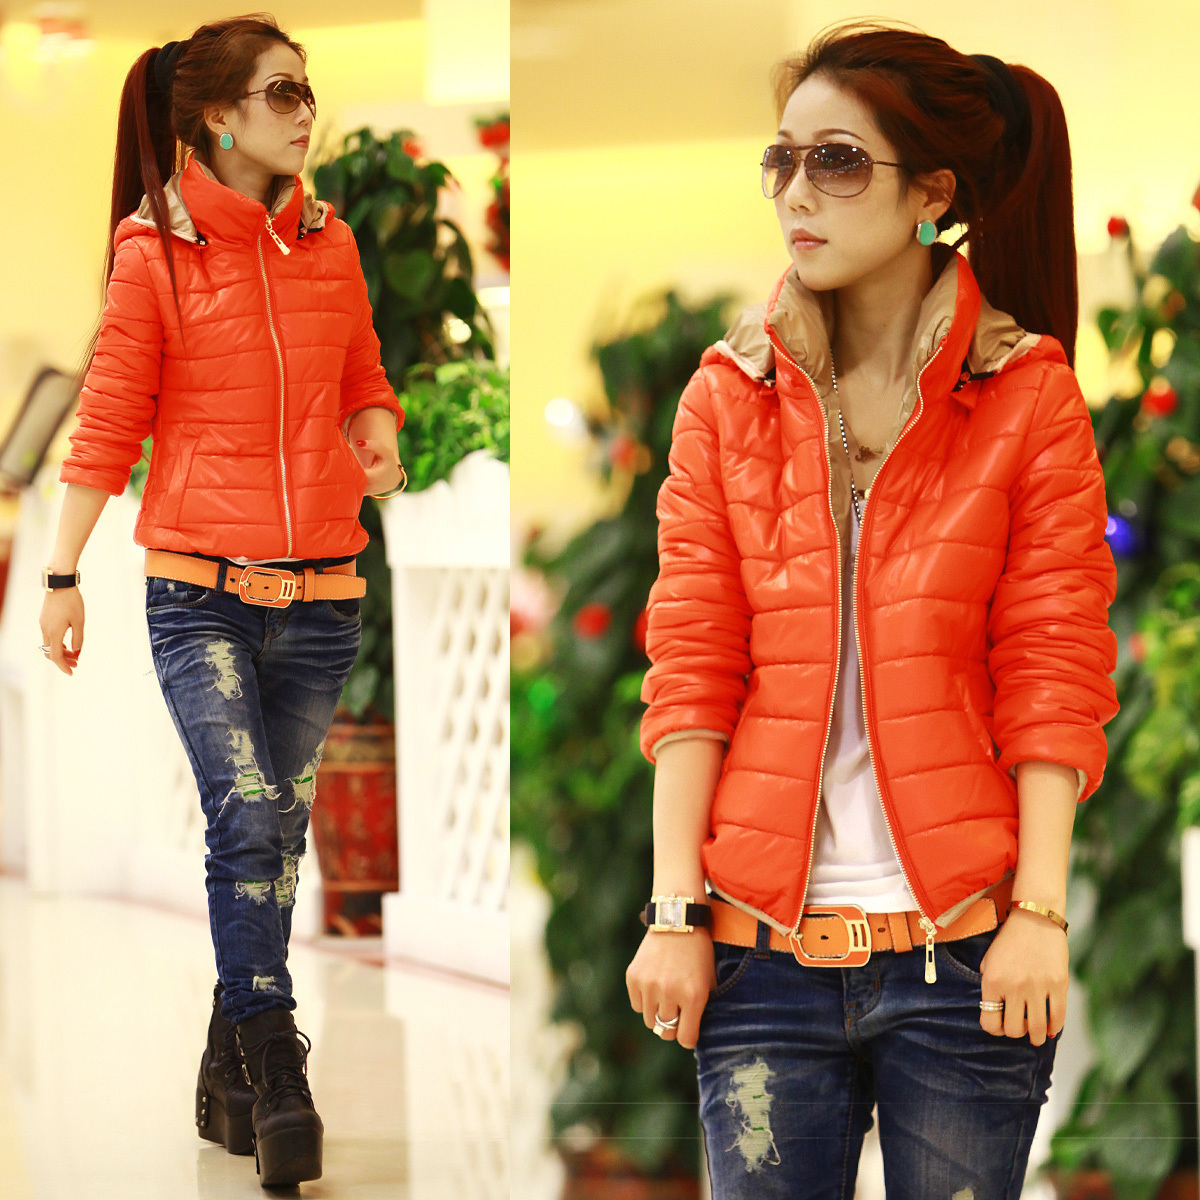 Related Keywords & Suggestions for Cool Winter Jackets For Women